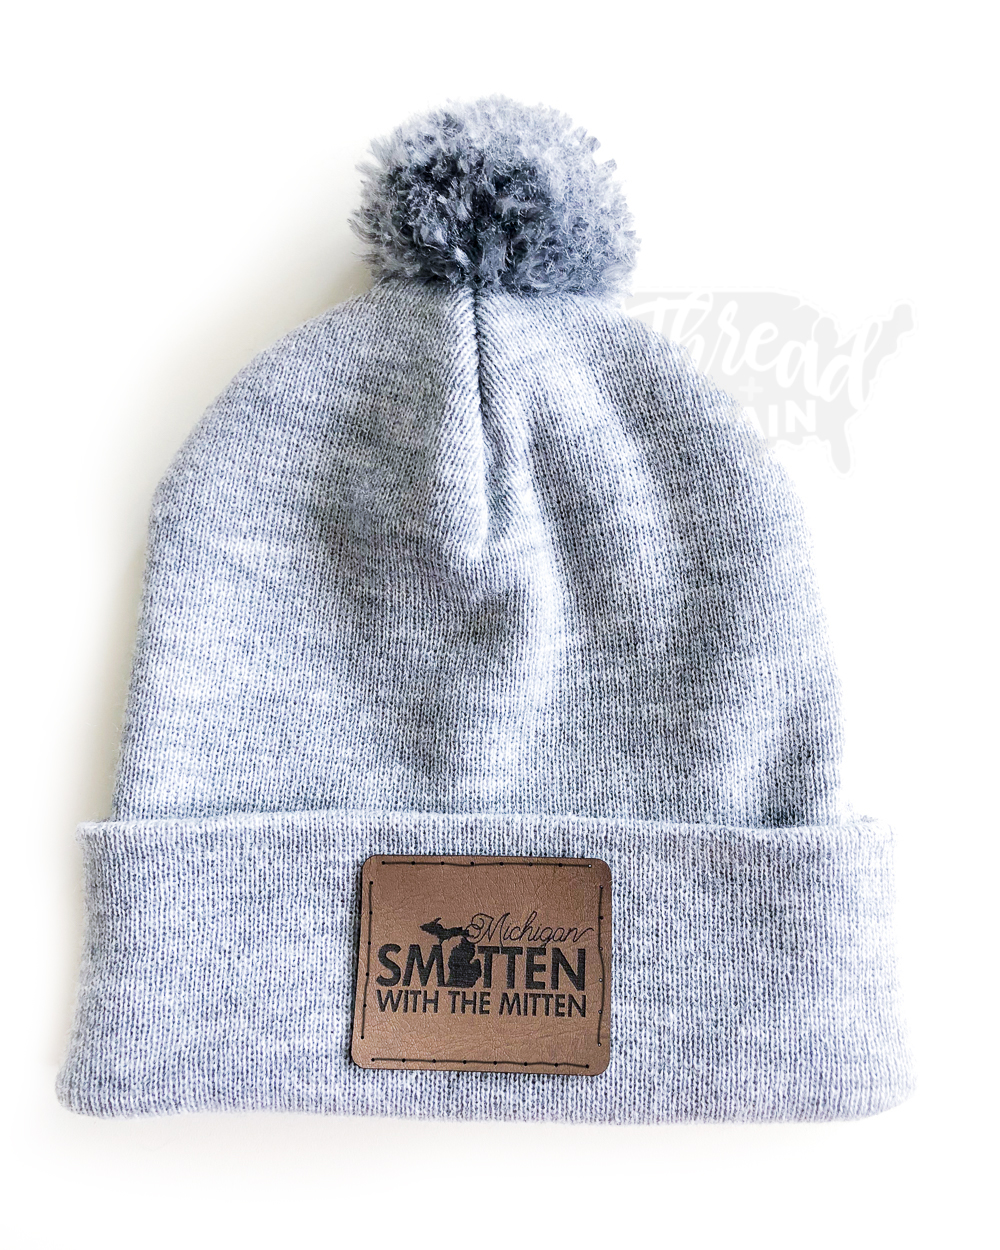 Michigan :: Smitten With the Mitten PATCHED HAT